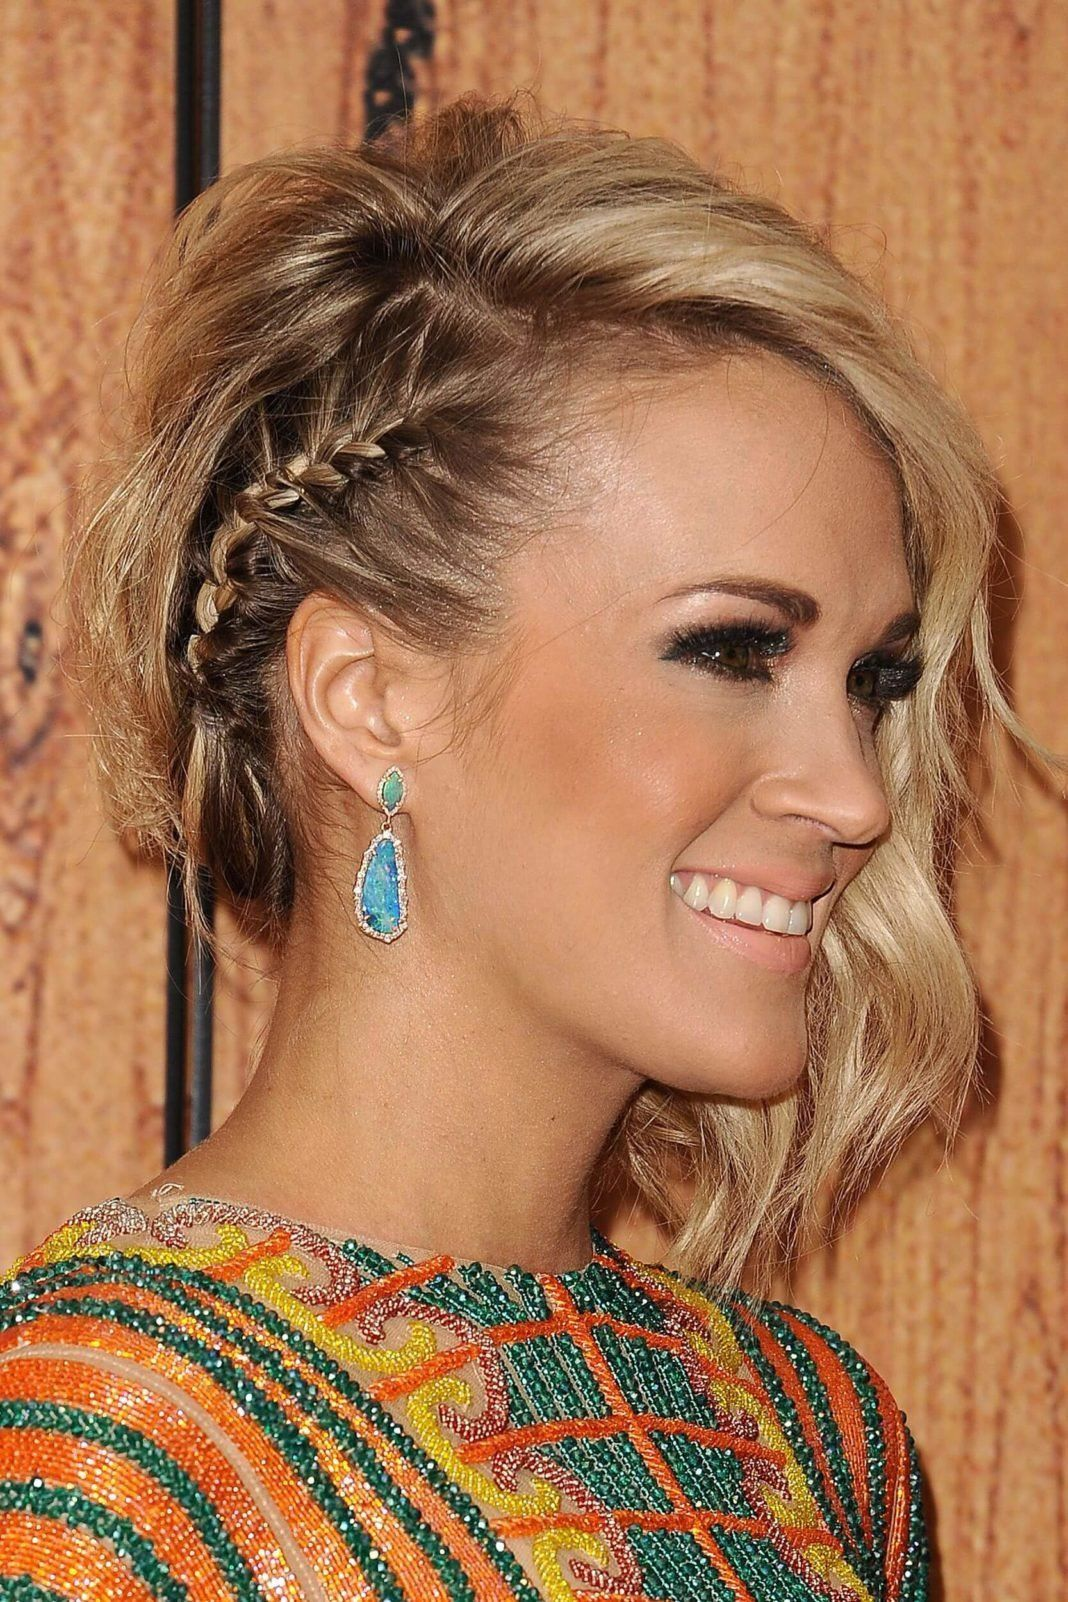 Stunning Christmas Hairstyles Don T Miss Out The Holiday Fun Fashions Eve Side Braid Hairstyles Braided Hairstyles Easy Hair Styles